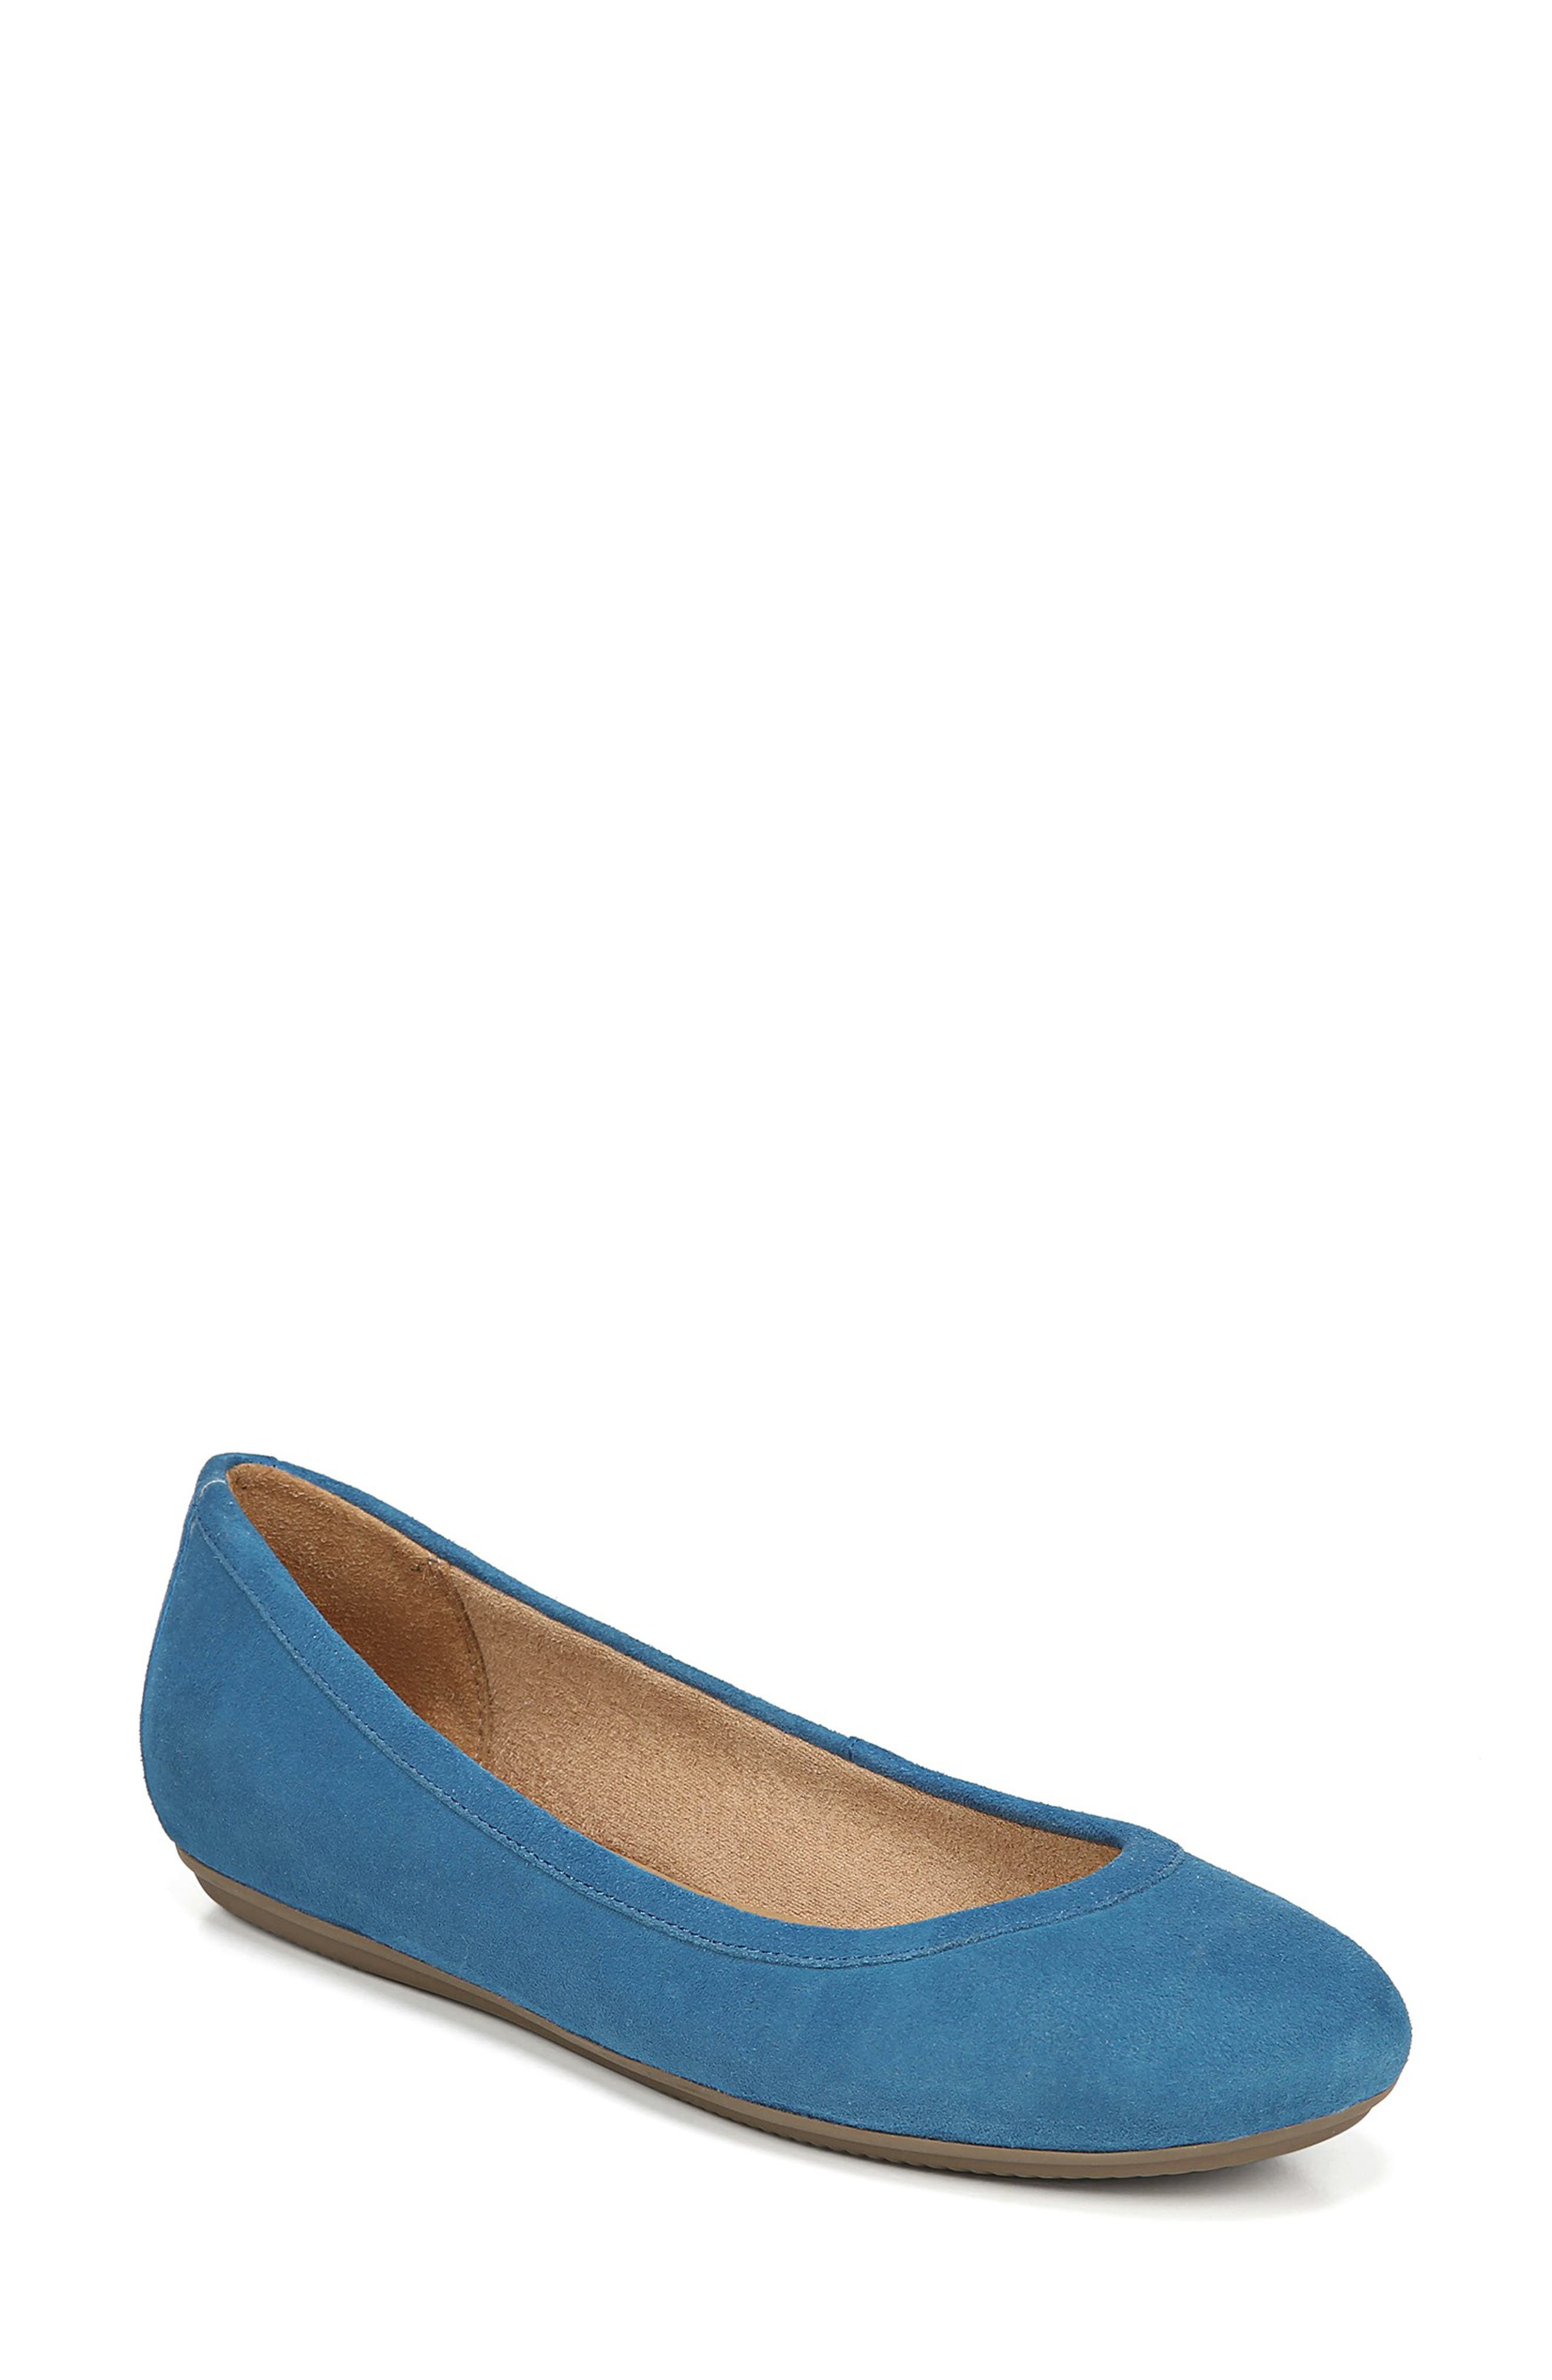 Brittany Flat, Main, color, ADMIRAL BLUE LEATHER